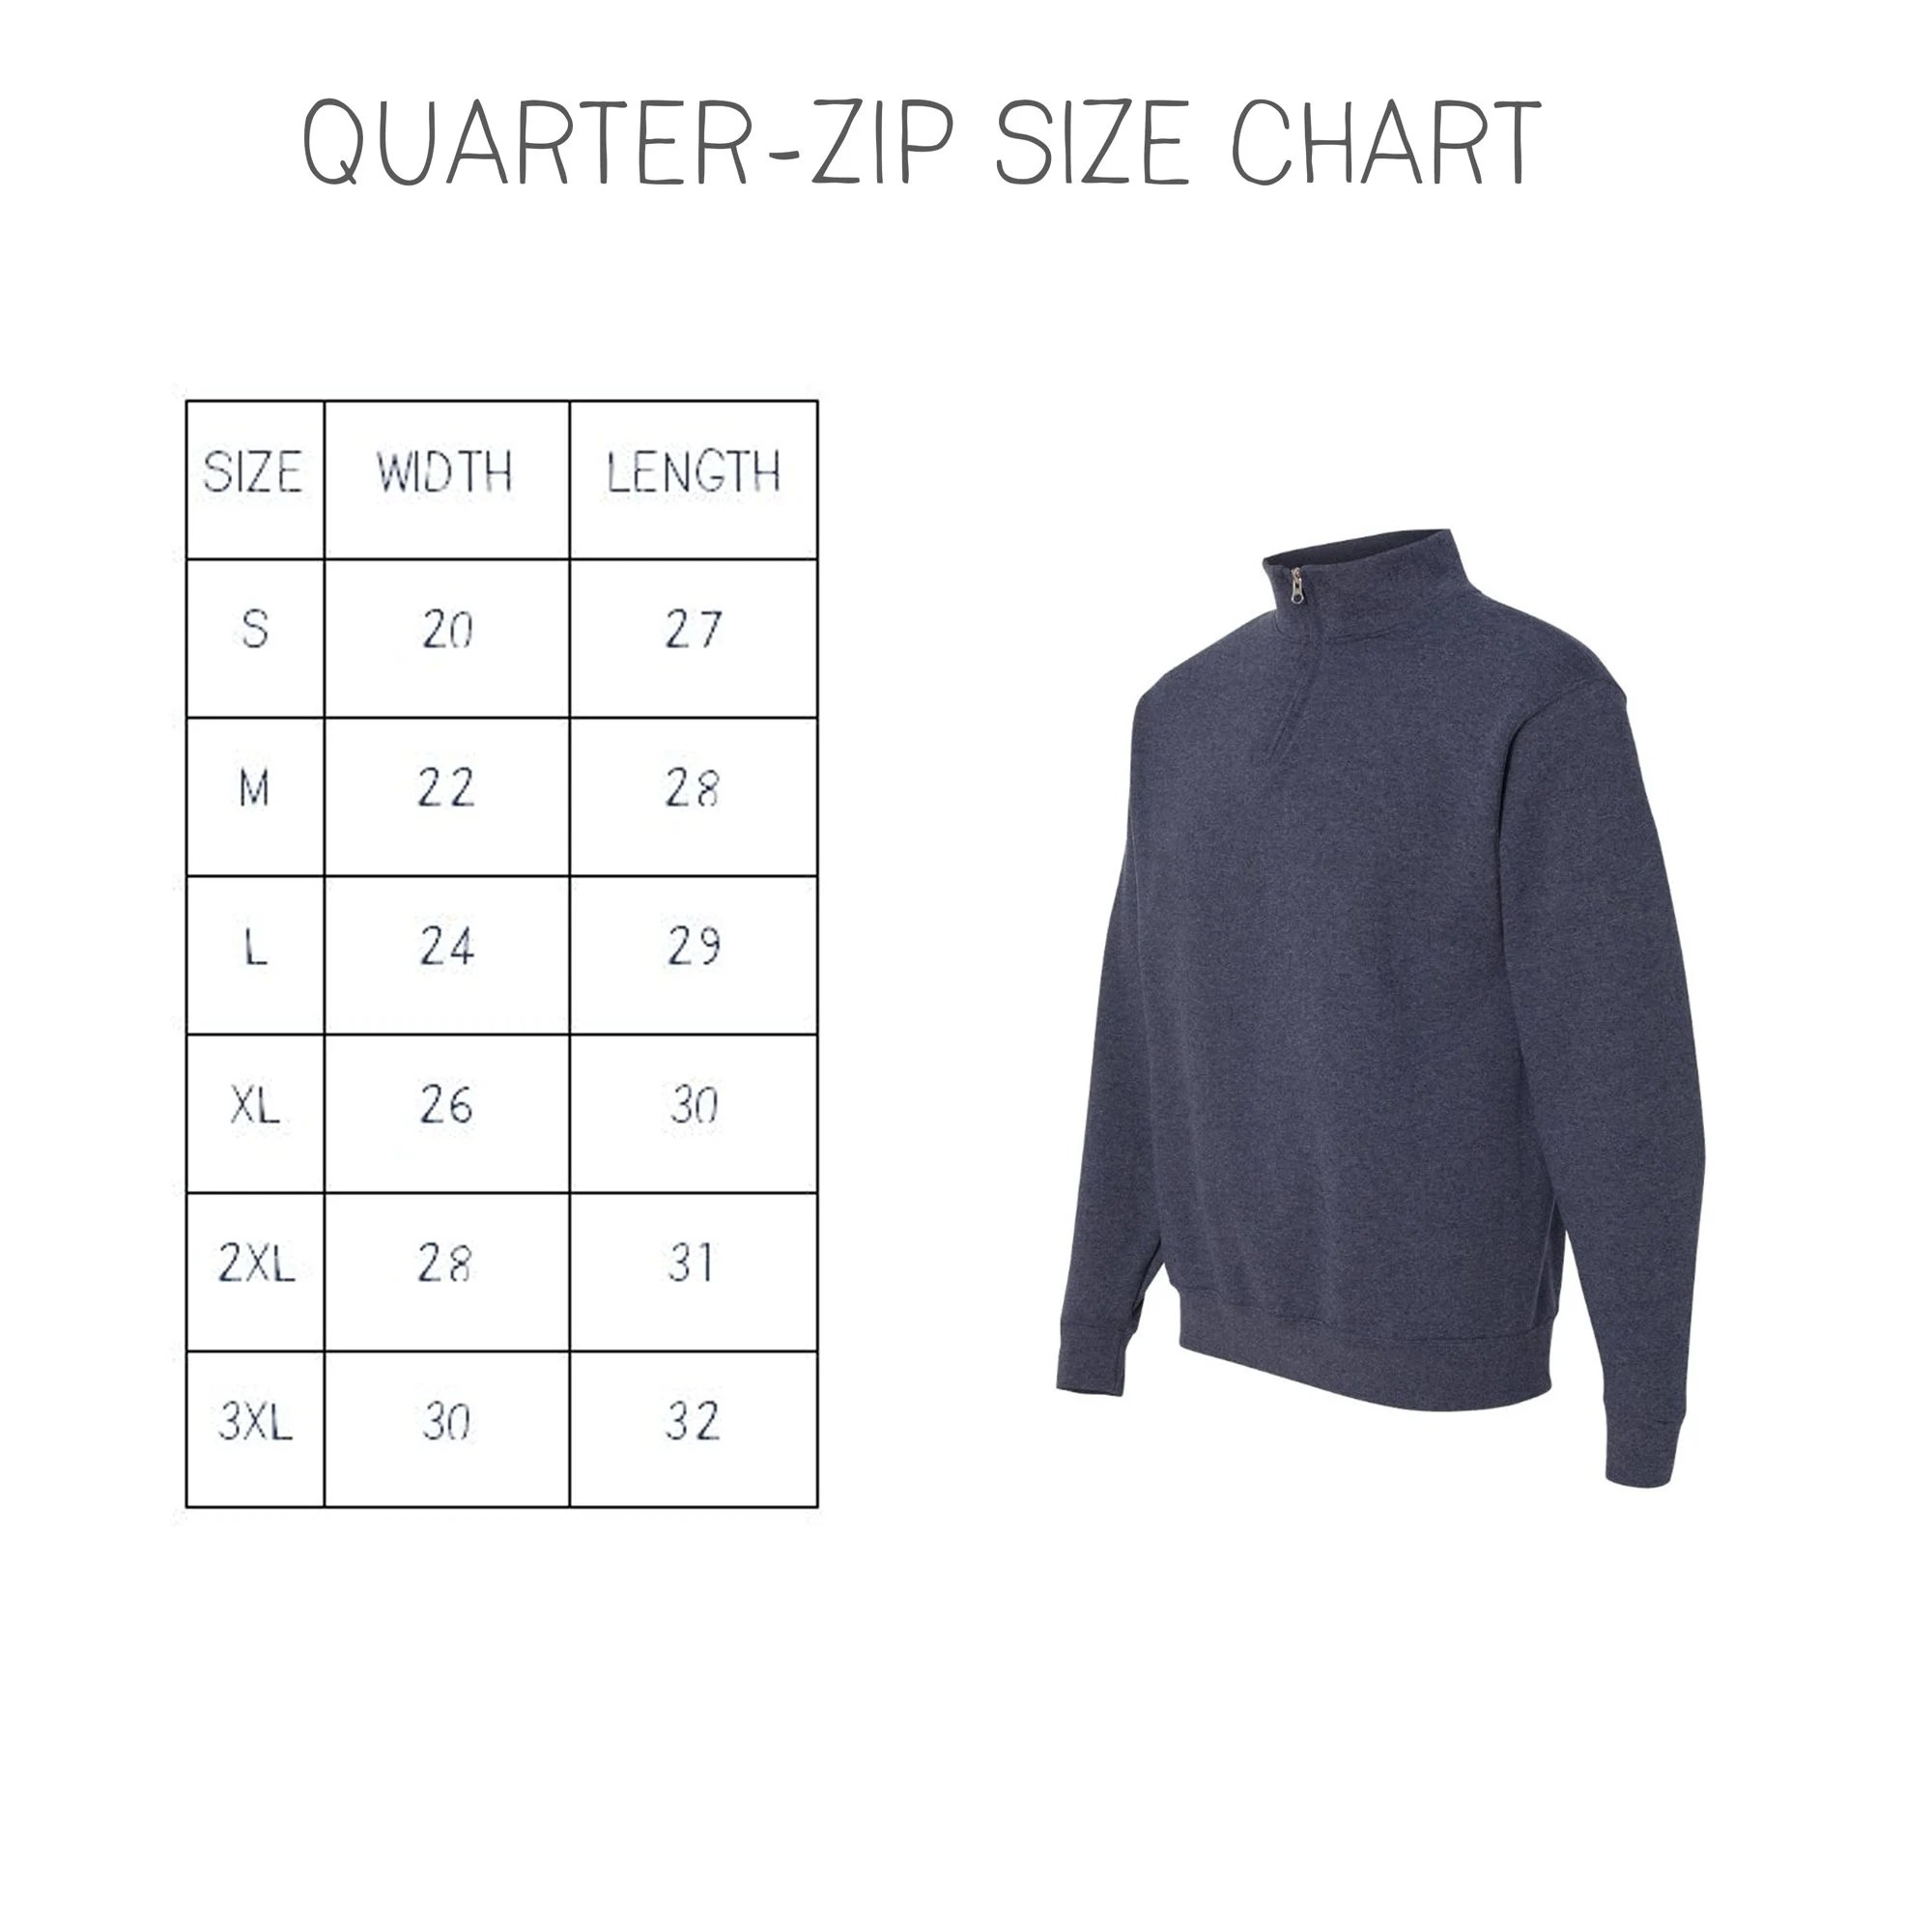 FREE Shipping  Monogram Pullover  Personalized Quarter Zip image 5